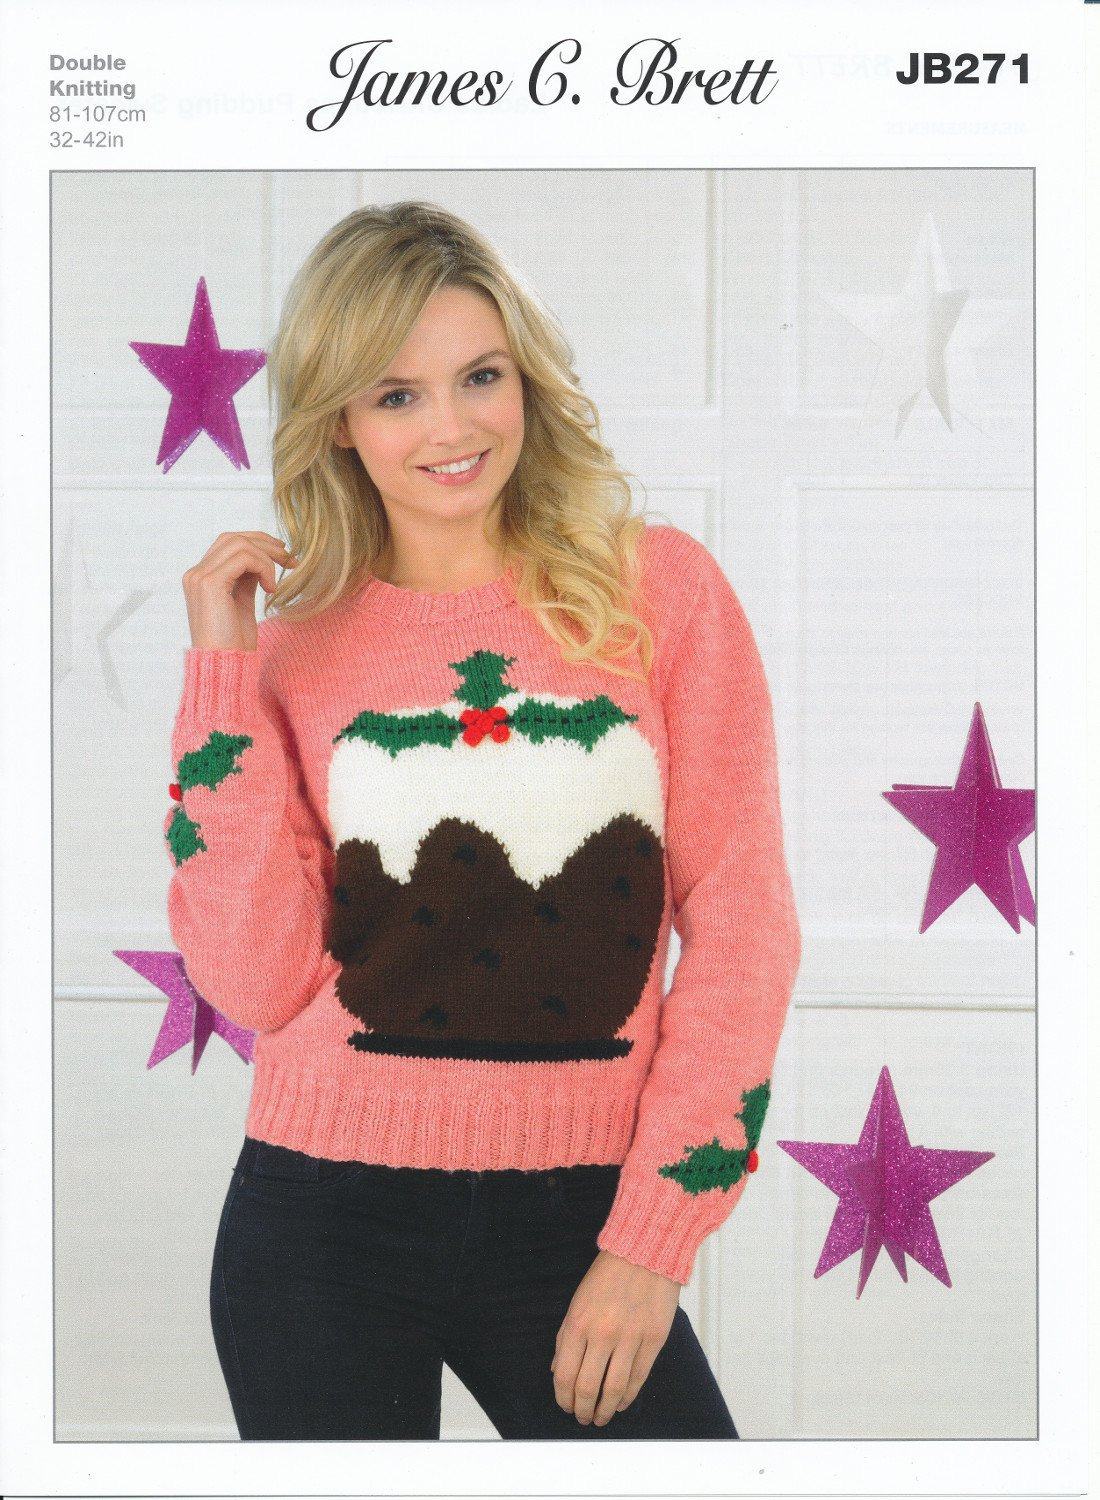 James Brett Double Knitting Pattern Ladies Christmas Pudding Sweater Top Value DK (JB271) by James C Brett Patterns